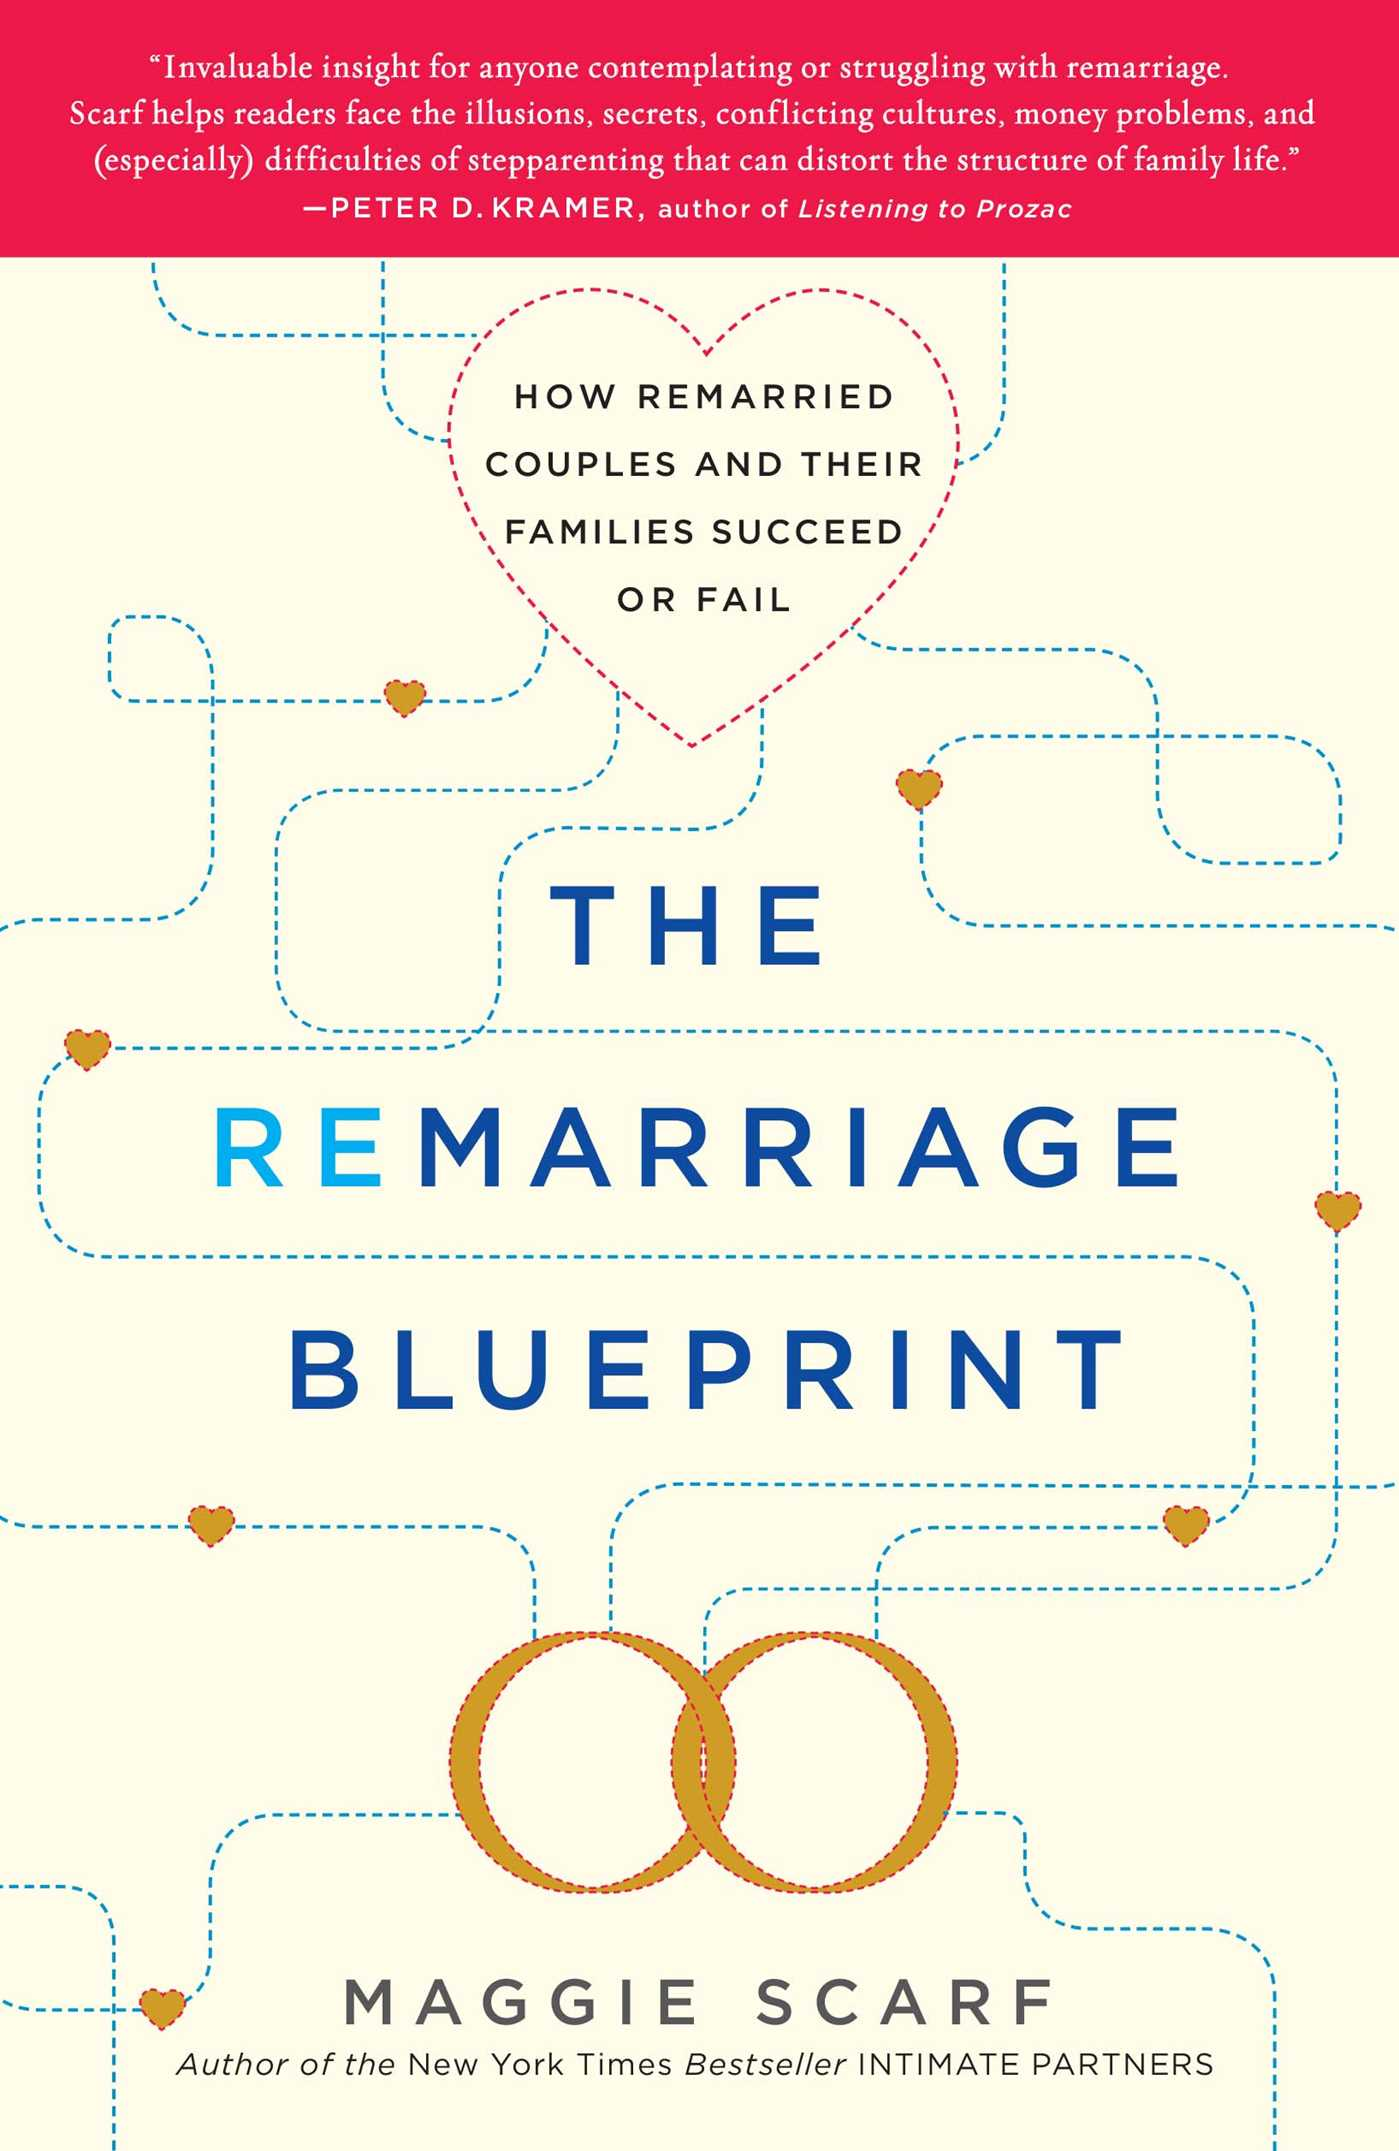 The remarriage blueprint ebook by maggie scarf official publisher book cover image jpg the remarriage blueprint malvernweather Image collections